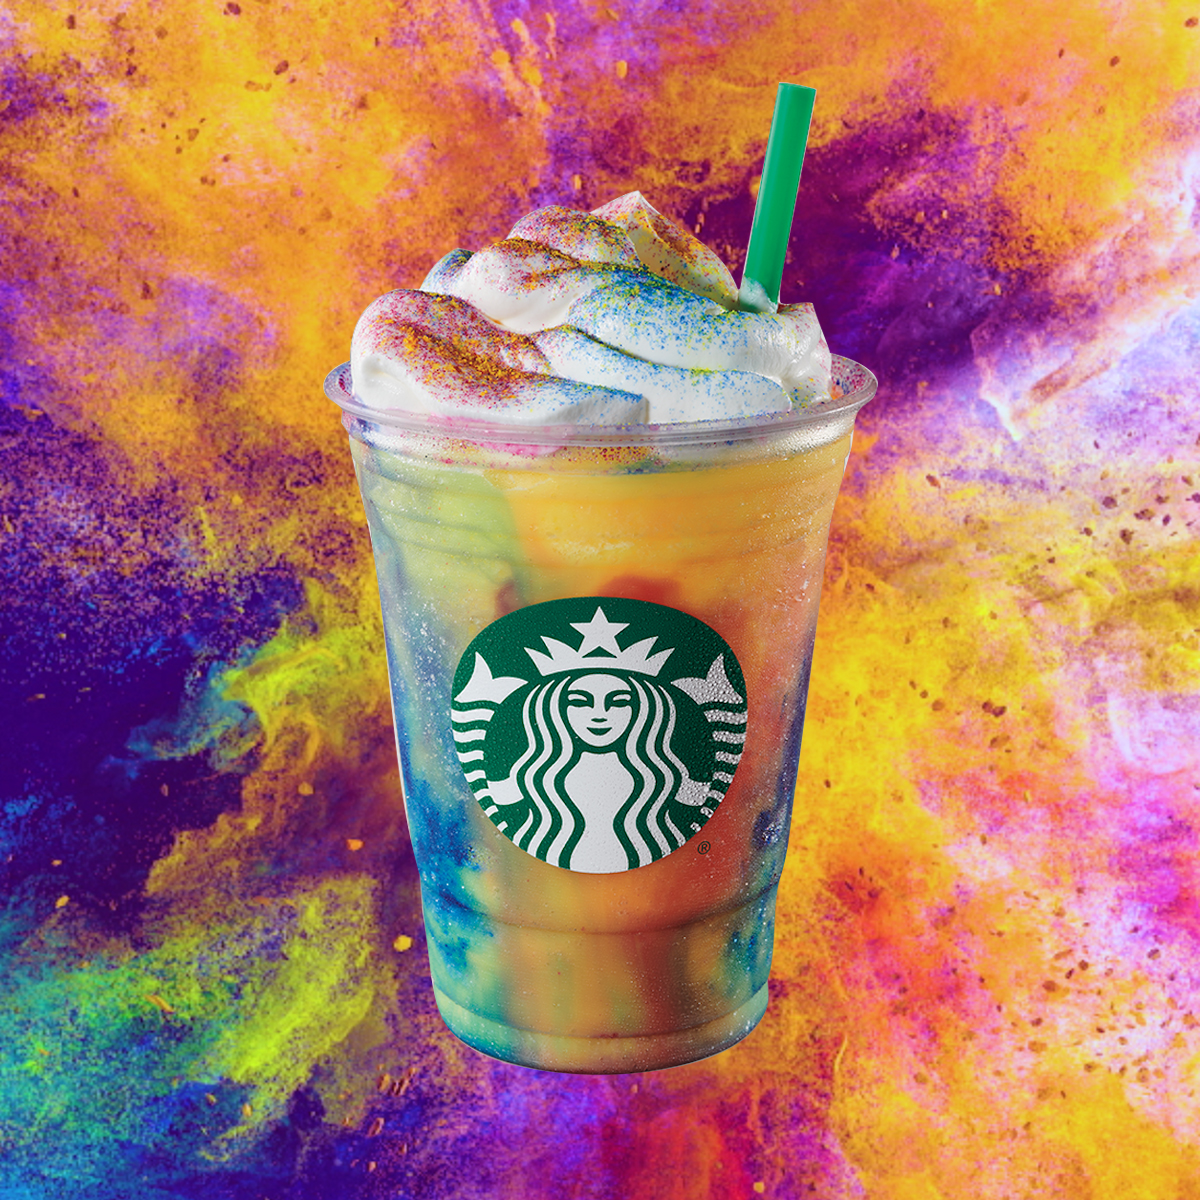 starbucks-tie-dye-2-XL-BLOG0719.jpg